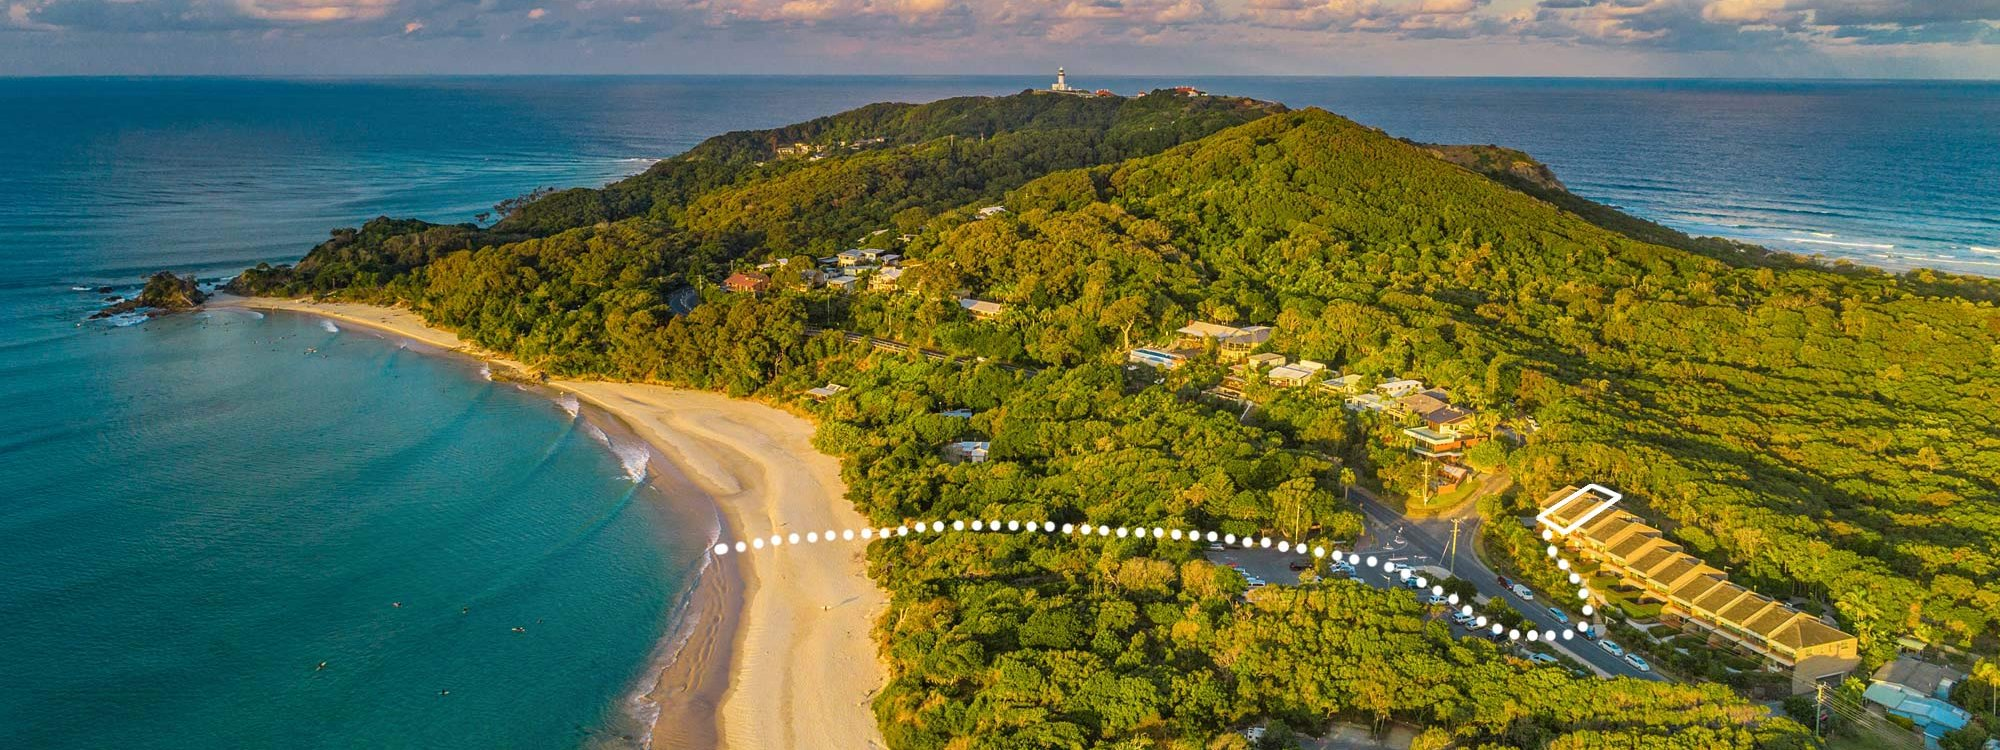 11 James Cook - Byron Bay - Aerial View of Cape Byron Line to Beach